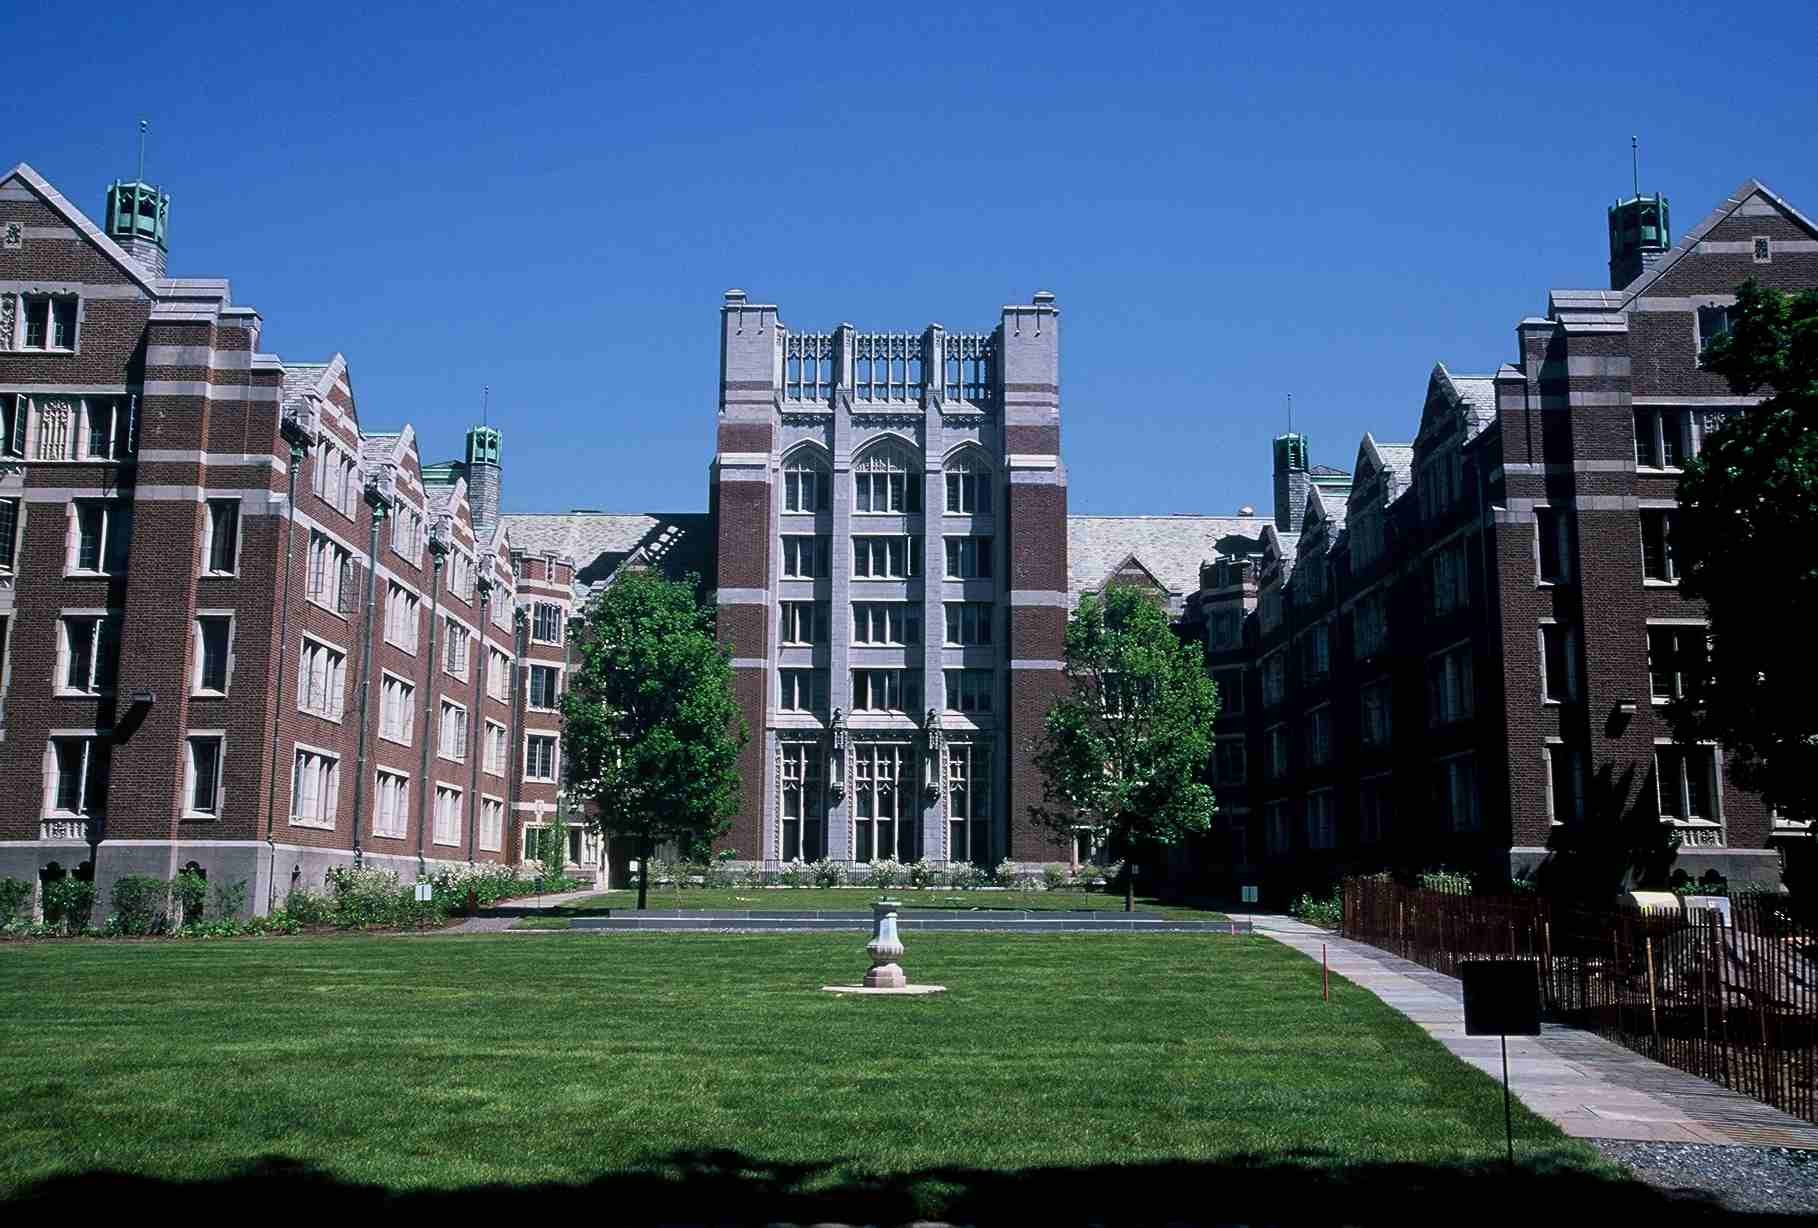 The Wellesley college dormitory